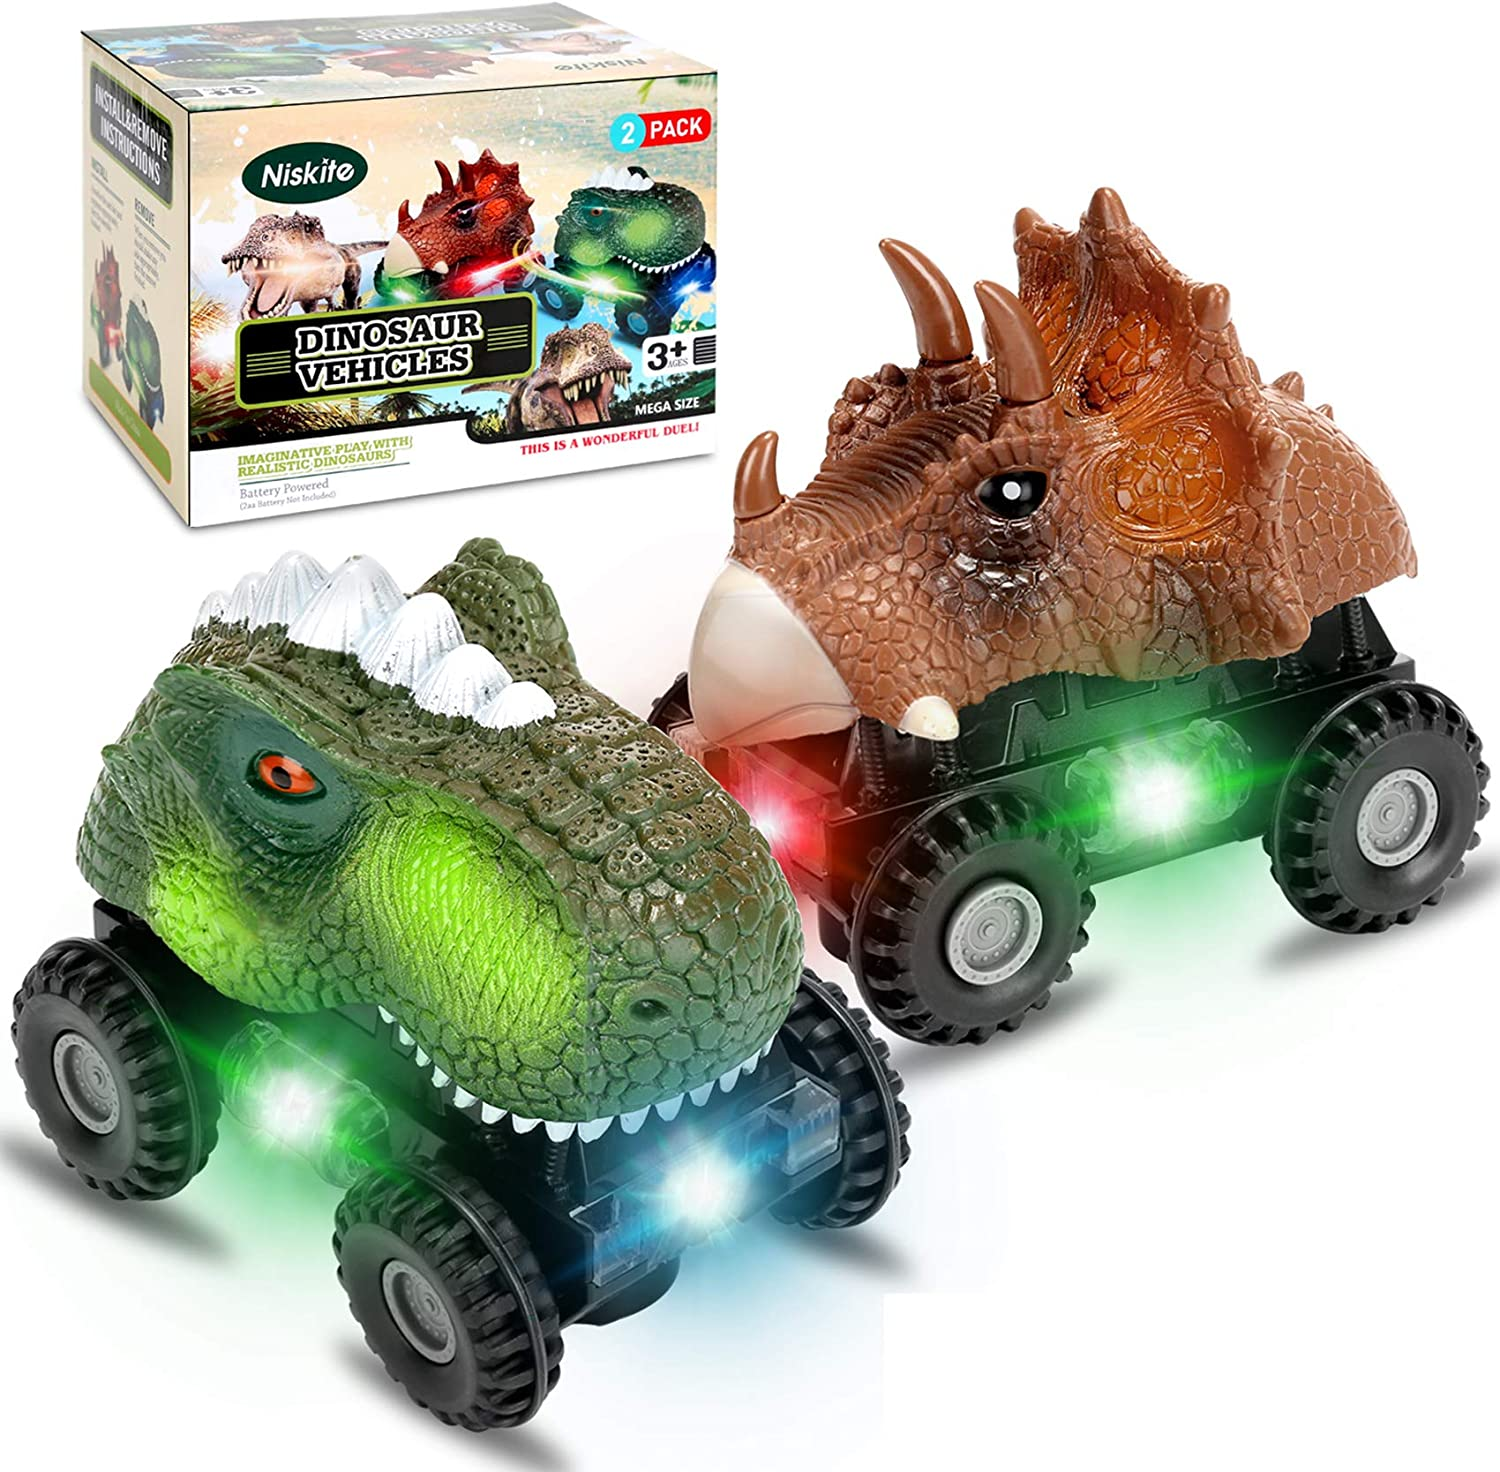 Amazon Com Dinosaur Toys For 2 3 4 Year Olds Boys Niskite Dinosaur Car For Kids Toddler Gifts For 5 8 Year Old Boy Most Popular Birthday Presents For Girl Age 6 7 2 Pack Toys Games